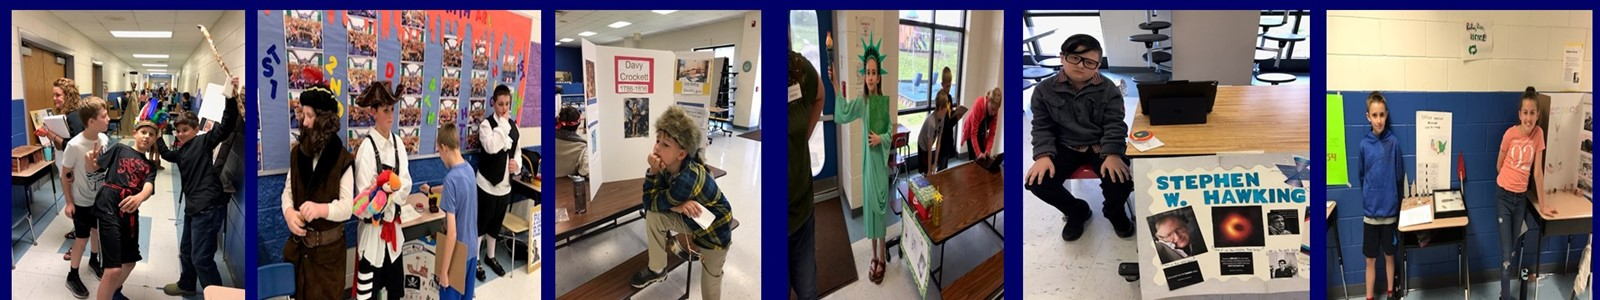 SCES Showcase of Learning